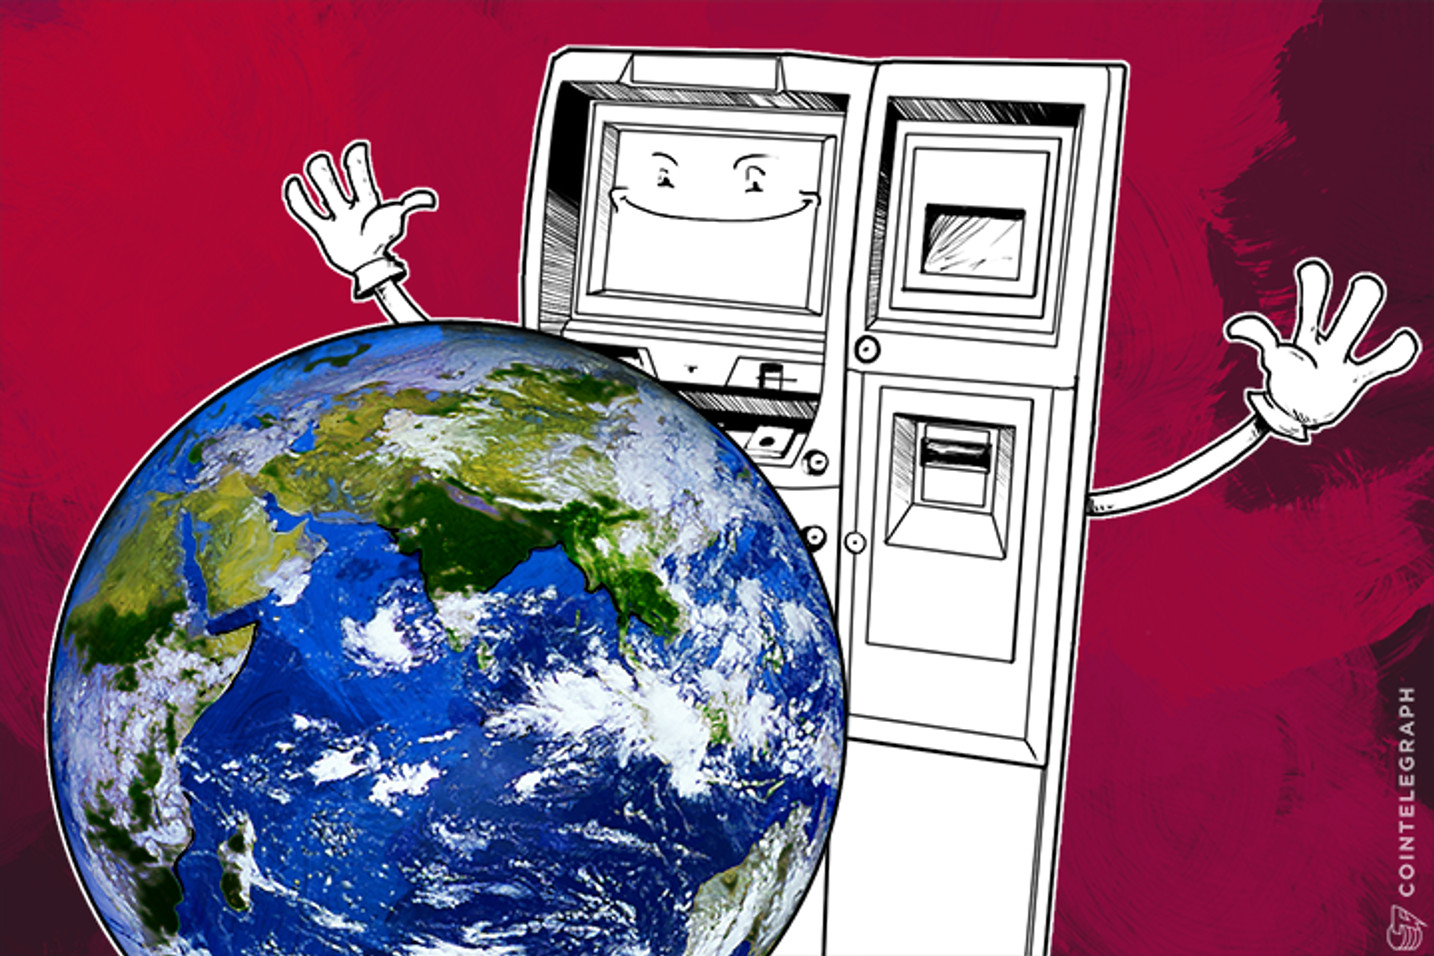 Bitcoin ATMs Reach 400 Units Worldwide, 2-Way Machines on the Rise